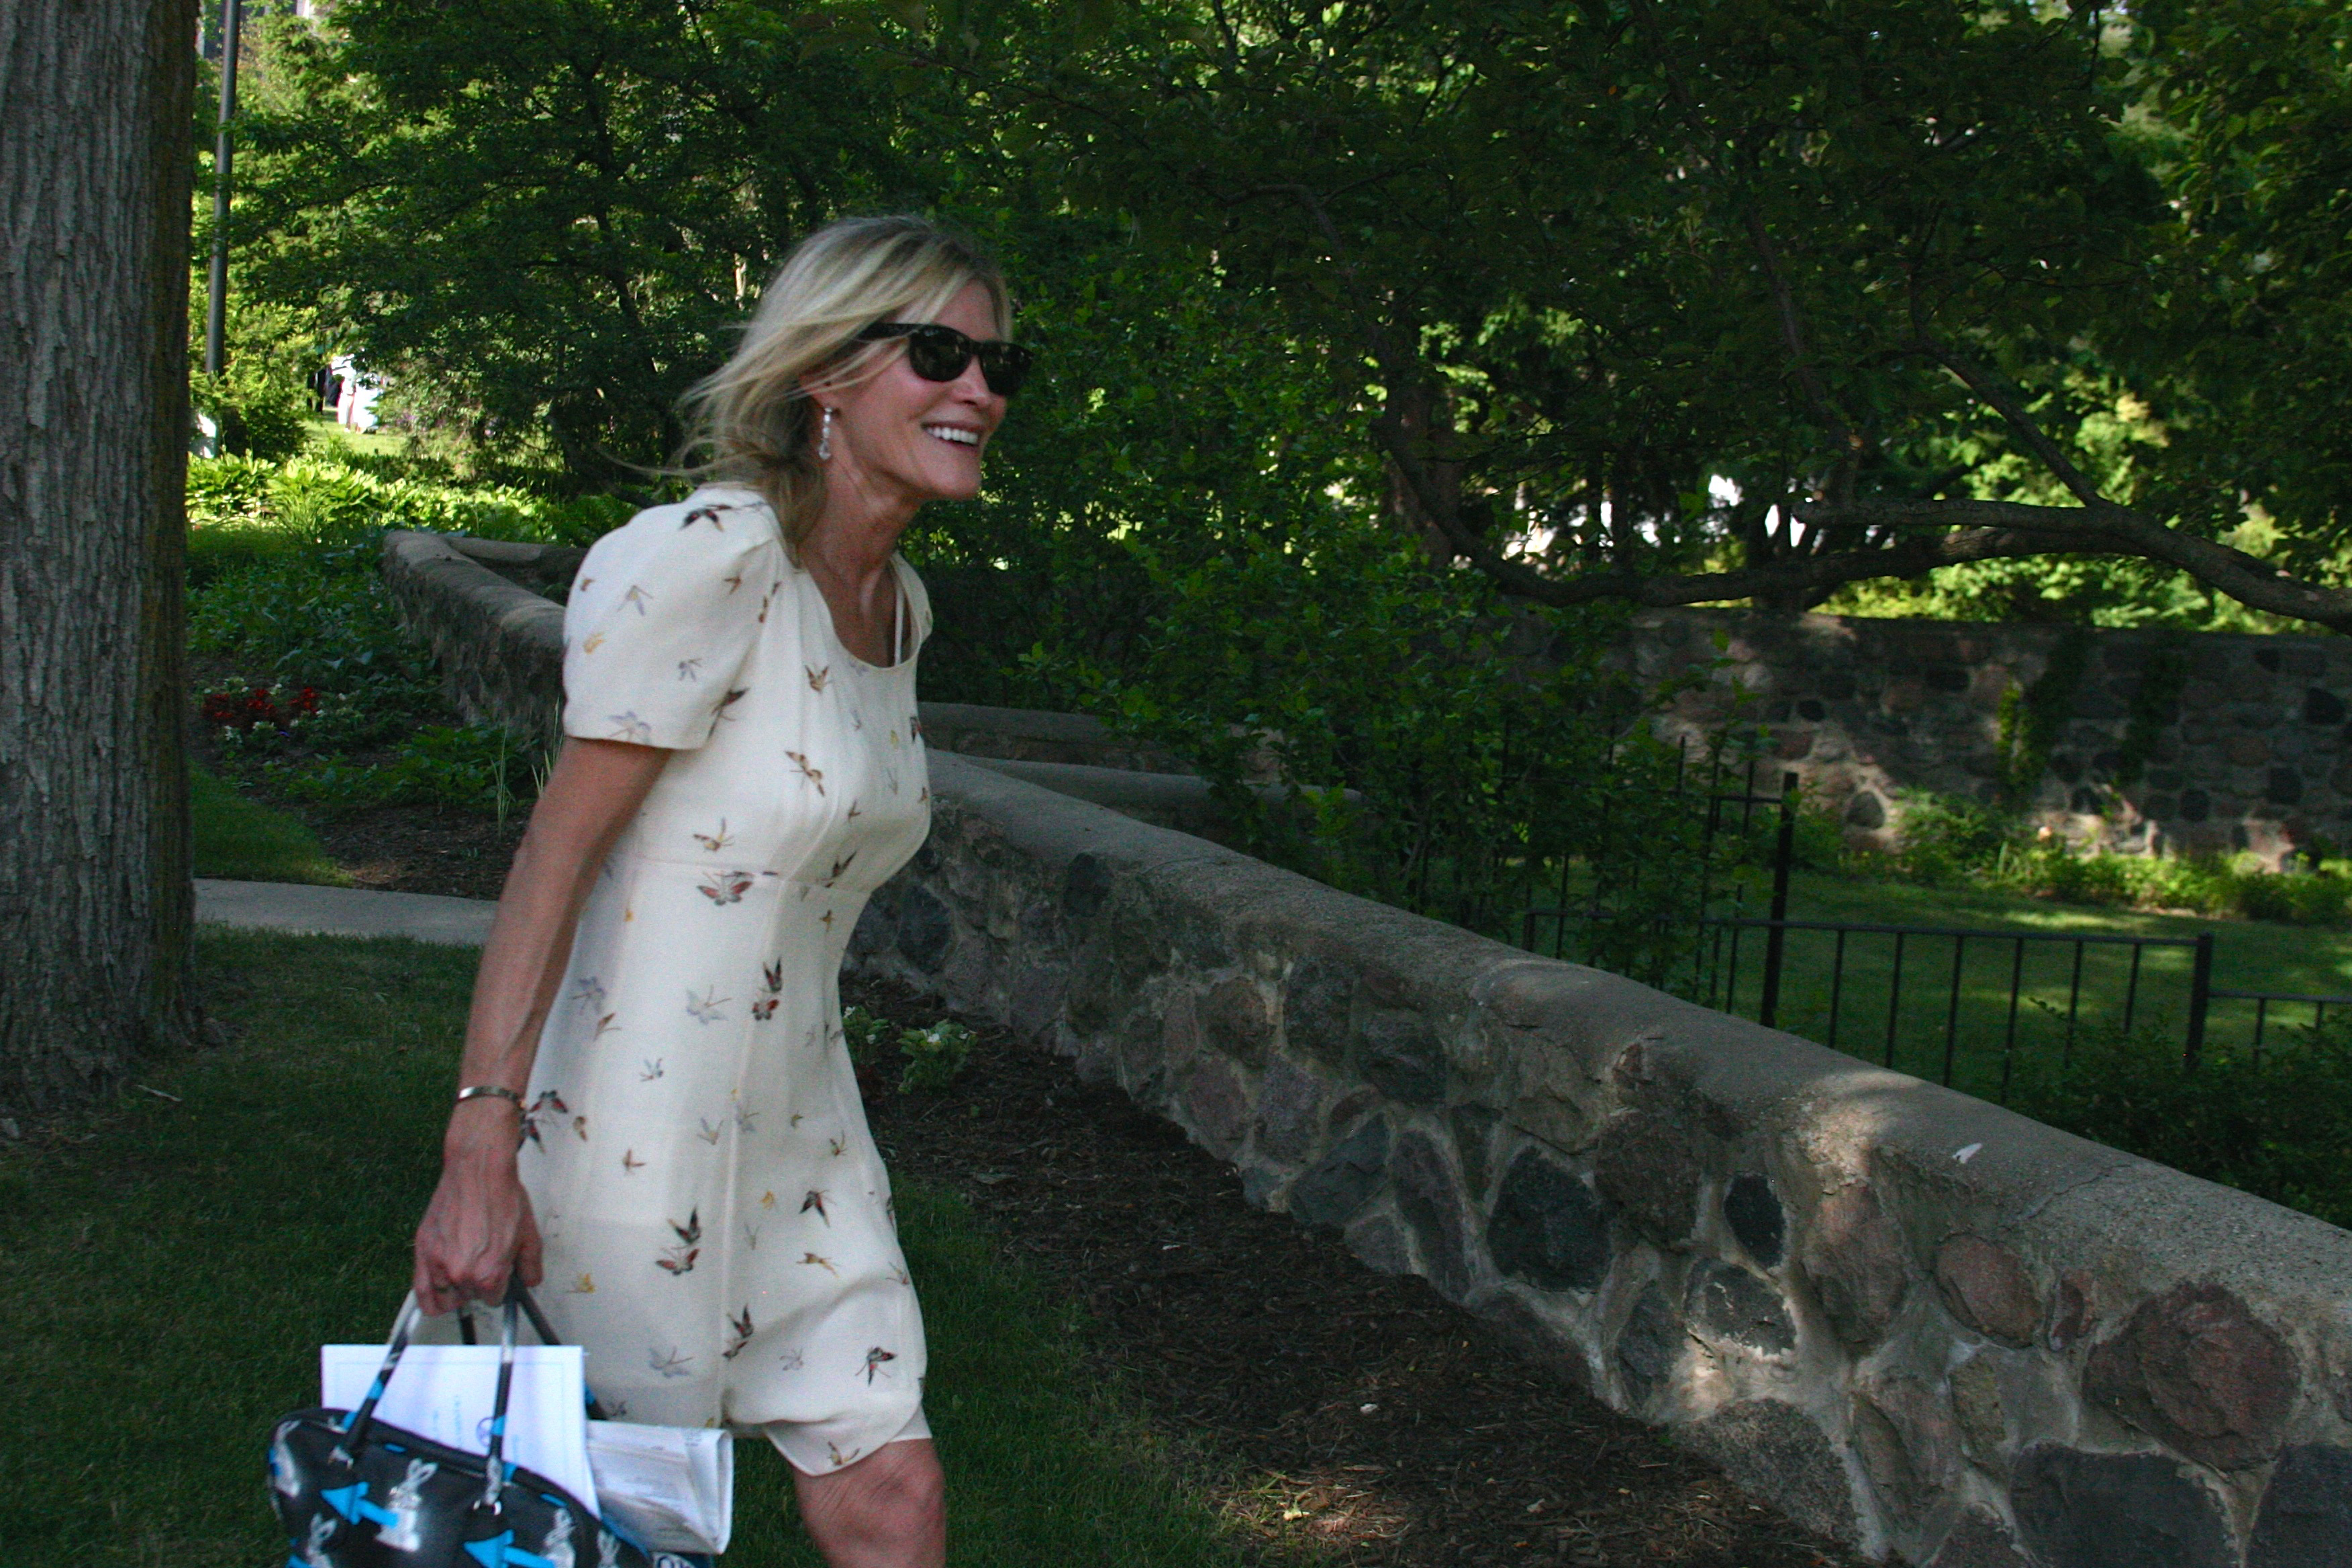 Kogler set against a backdrop of trees, smiling and holding a purse and wearing sunglasses